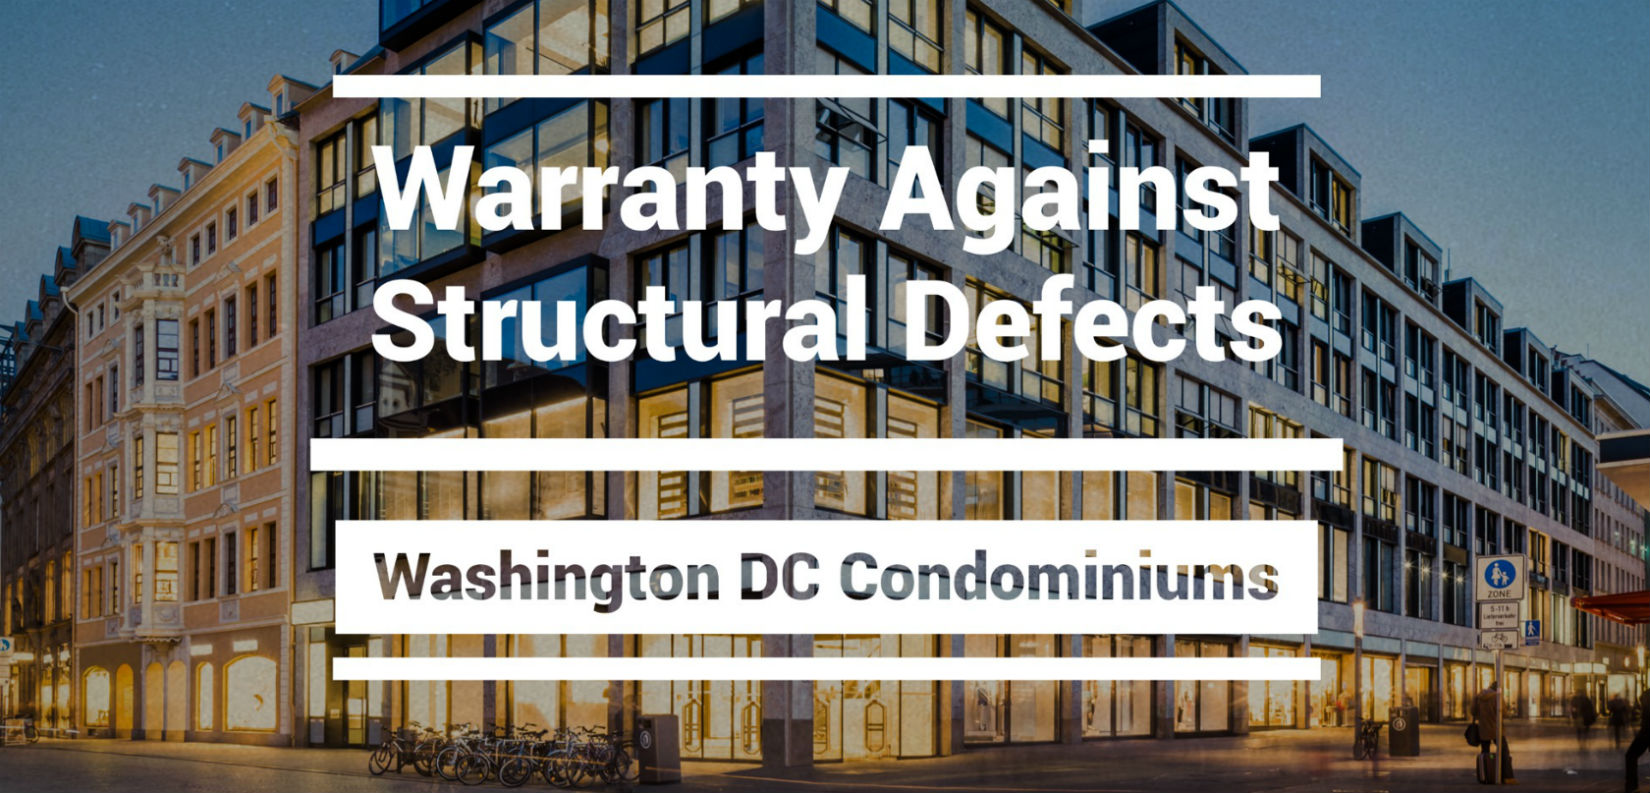 Washington DC Condominium Warranty Against Structural Defects Lawyers and Attorneys